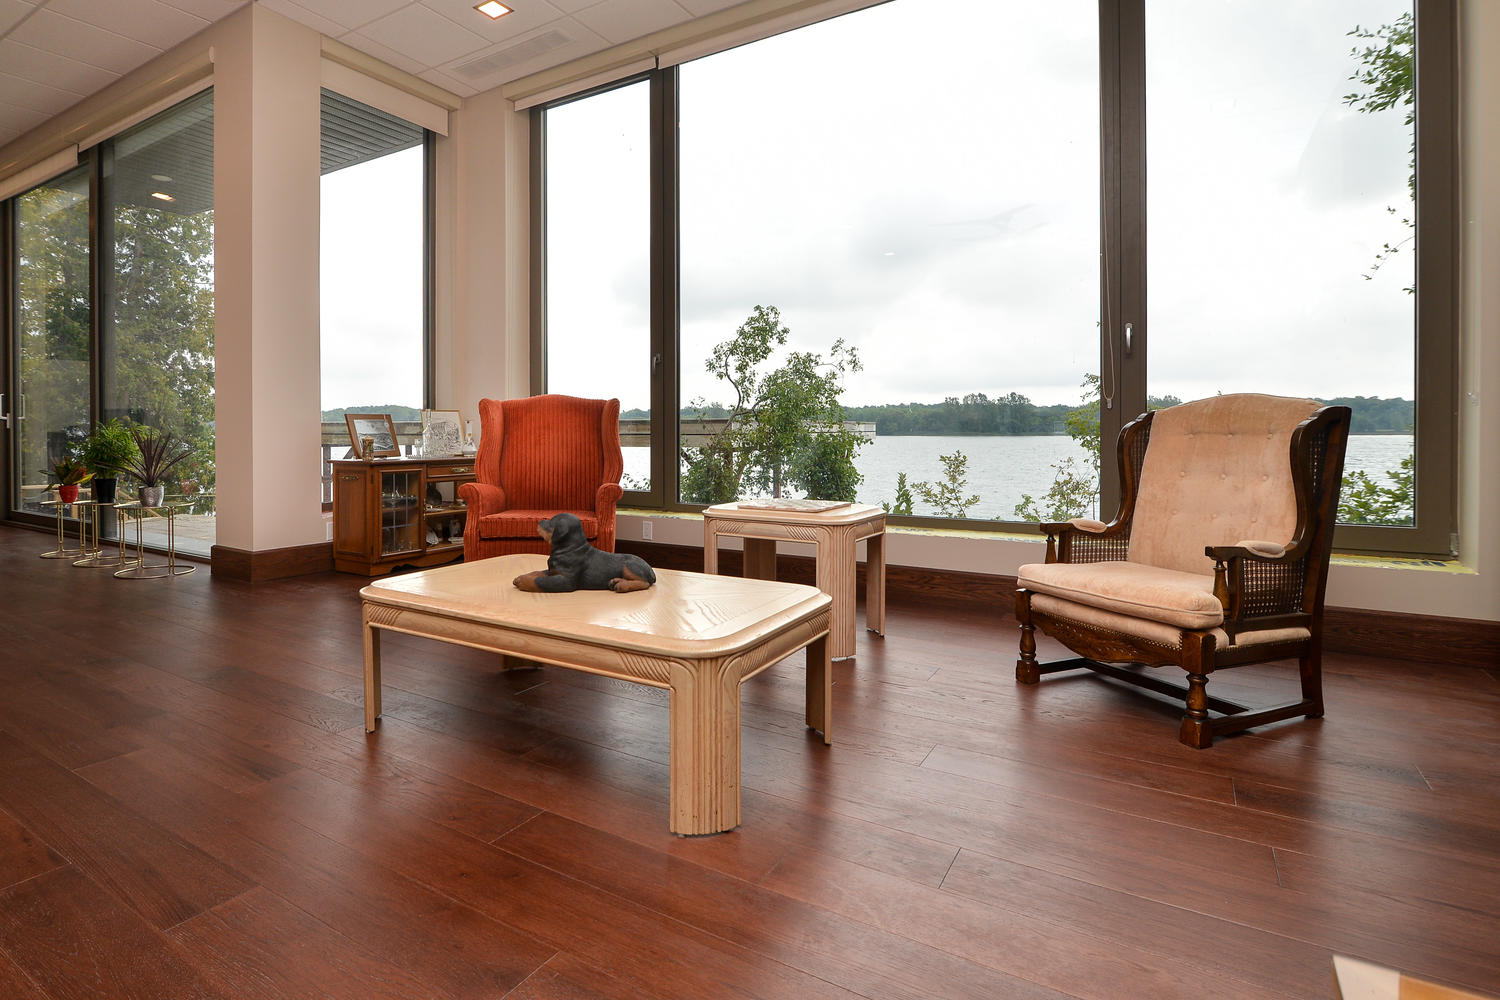 Hickory Wood Flooring in a living room